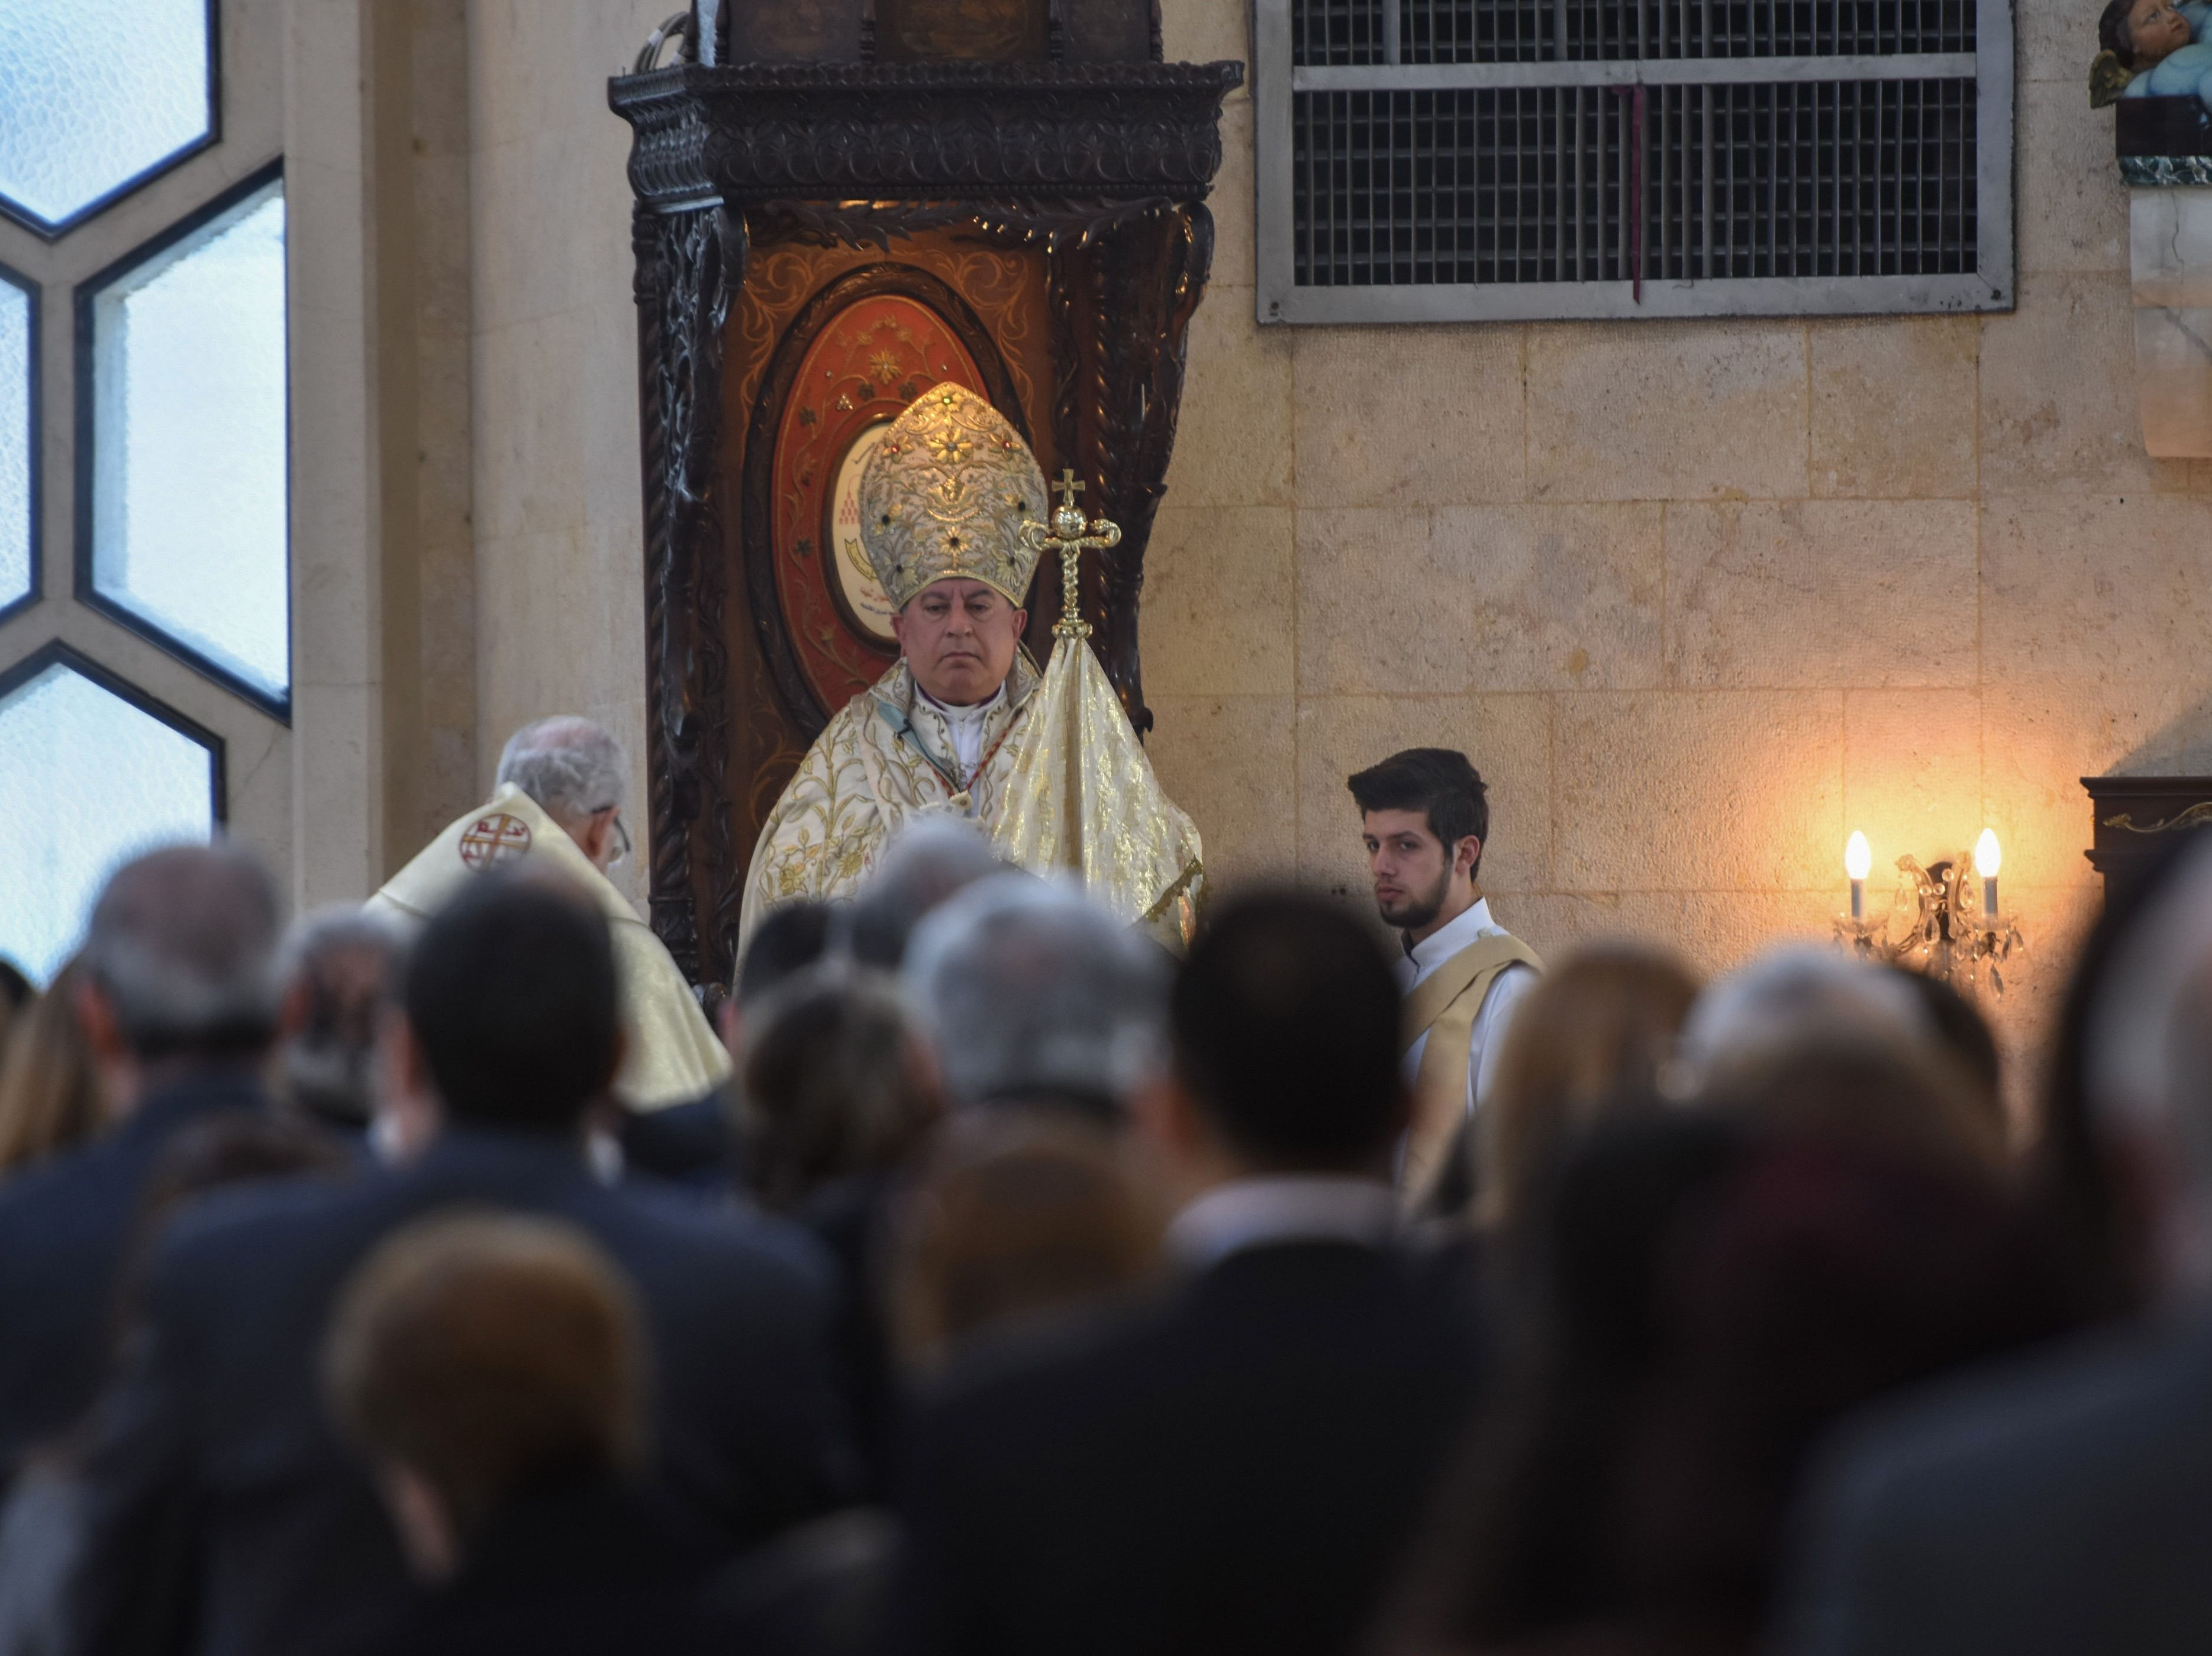 Syrian Syriac Catholics attend the Easter Mass at a church in Syria's northern city of Aleppo on April 21, 2019.